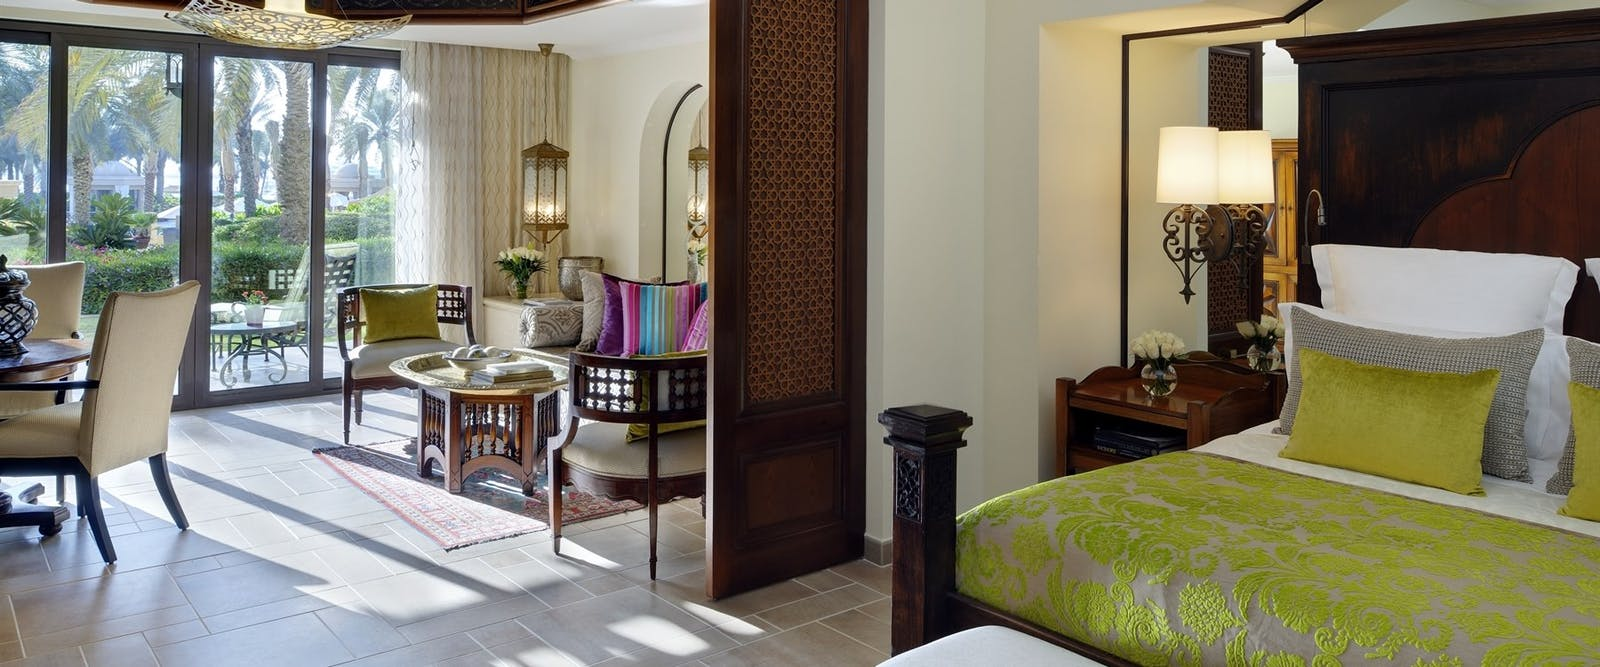 Junior Suite at One&Only Royal Mirage - The Residence & Spa, Dubai